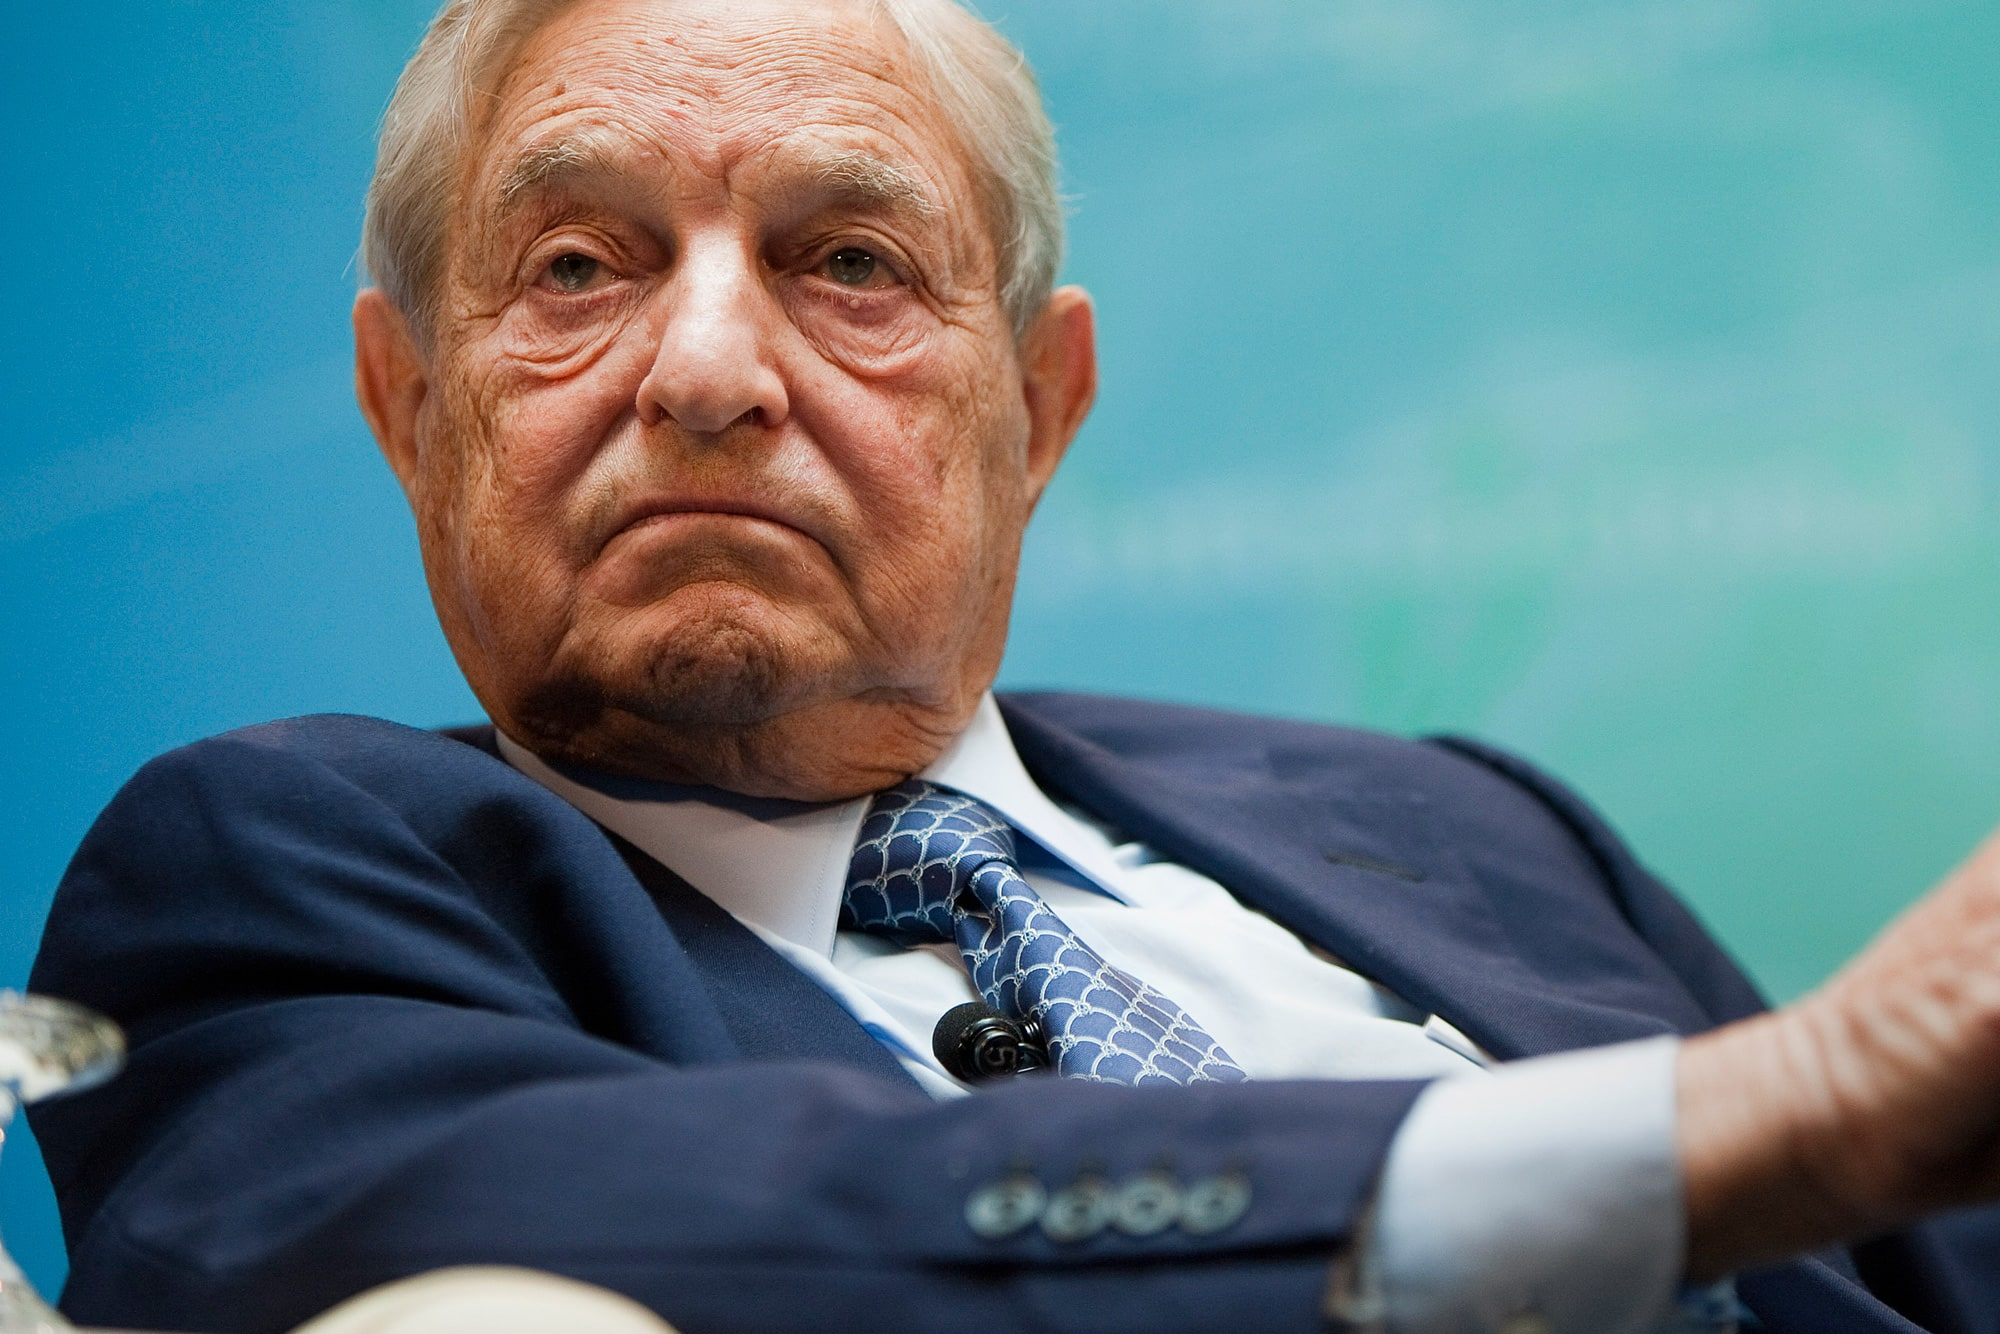 Soros offers rare praise for Trump's handling of Huawei in trade war